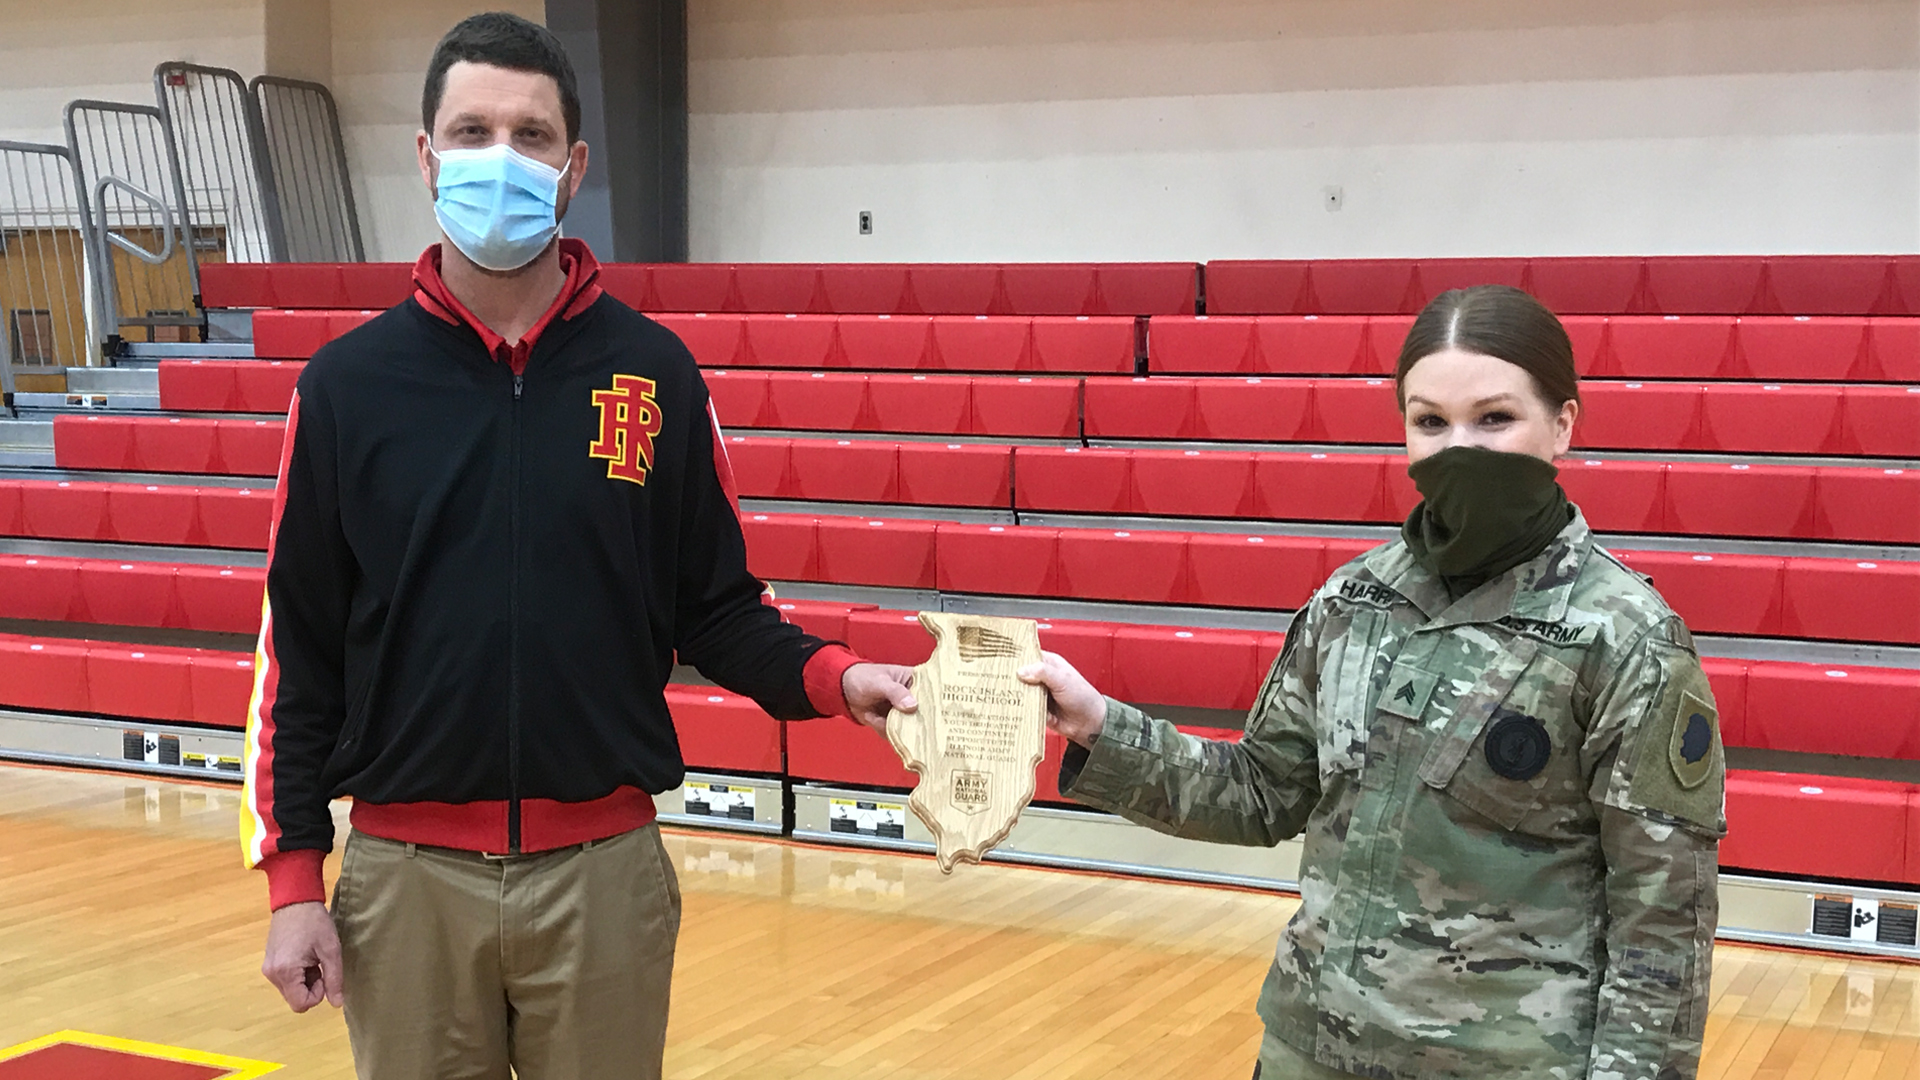 Rock Island High School Principal Jeff Whitaker accepts an award from Sergeant Jessica Harris with the Illinois Army National Guard on January 22, 2021.